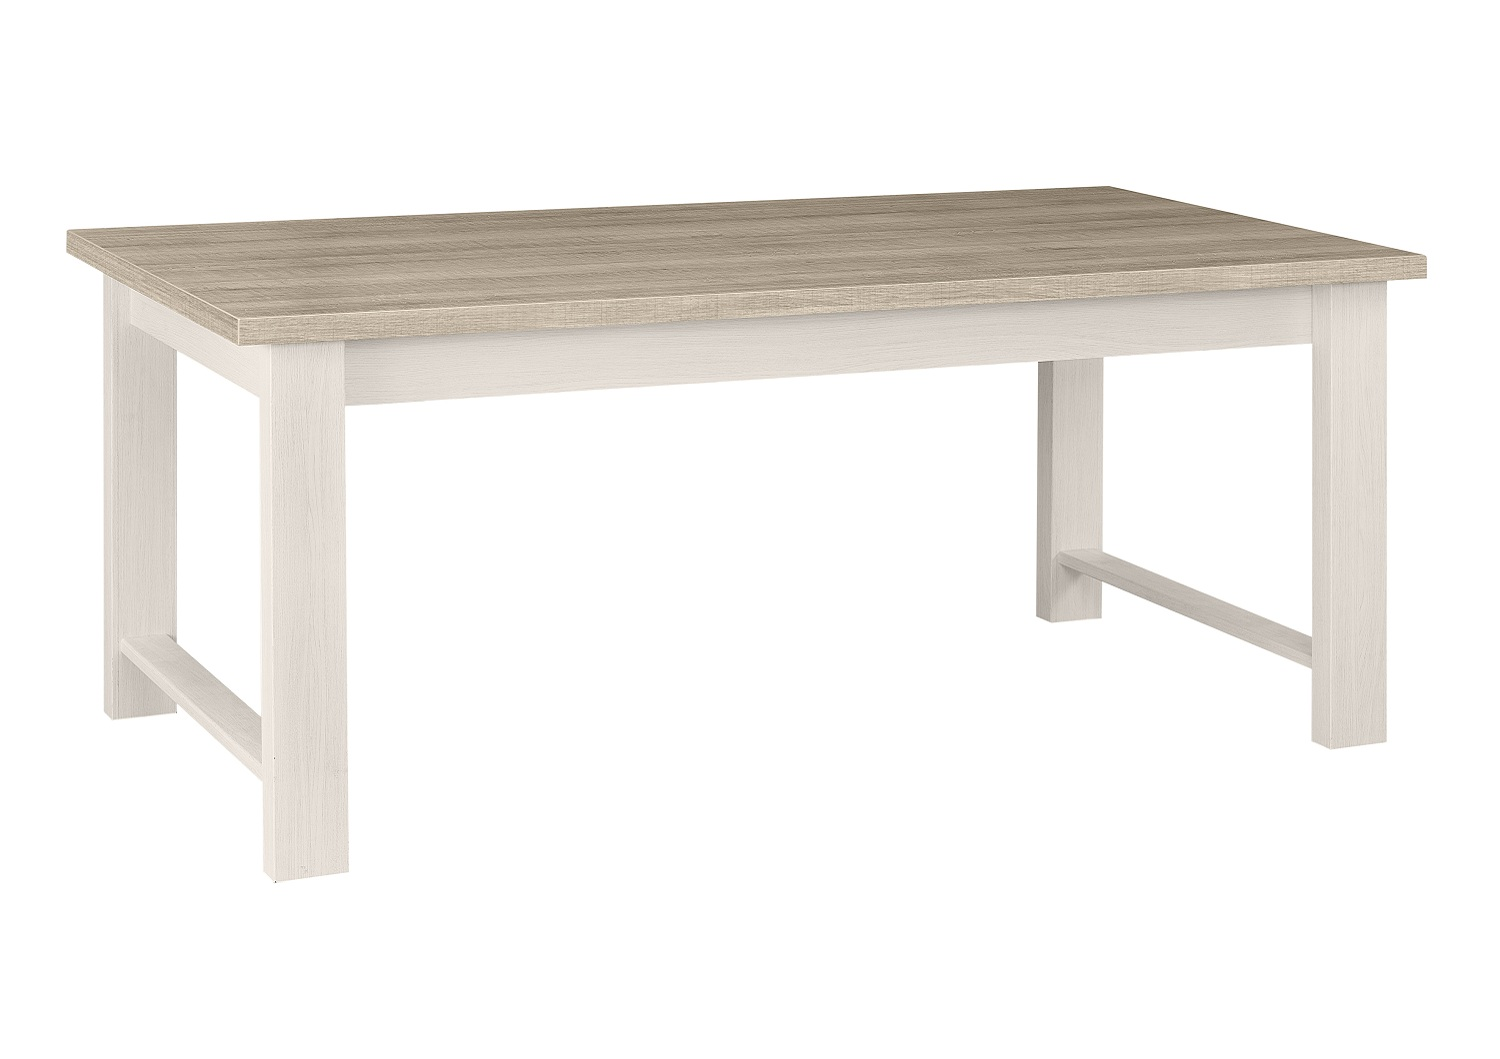 Bilrich Dining Furniture - Hanna Dining Table